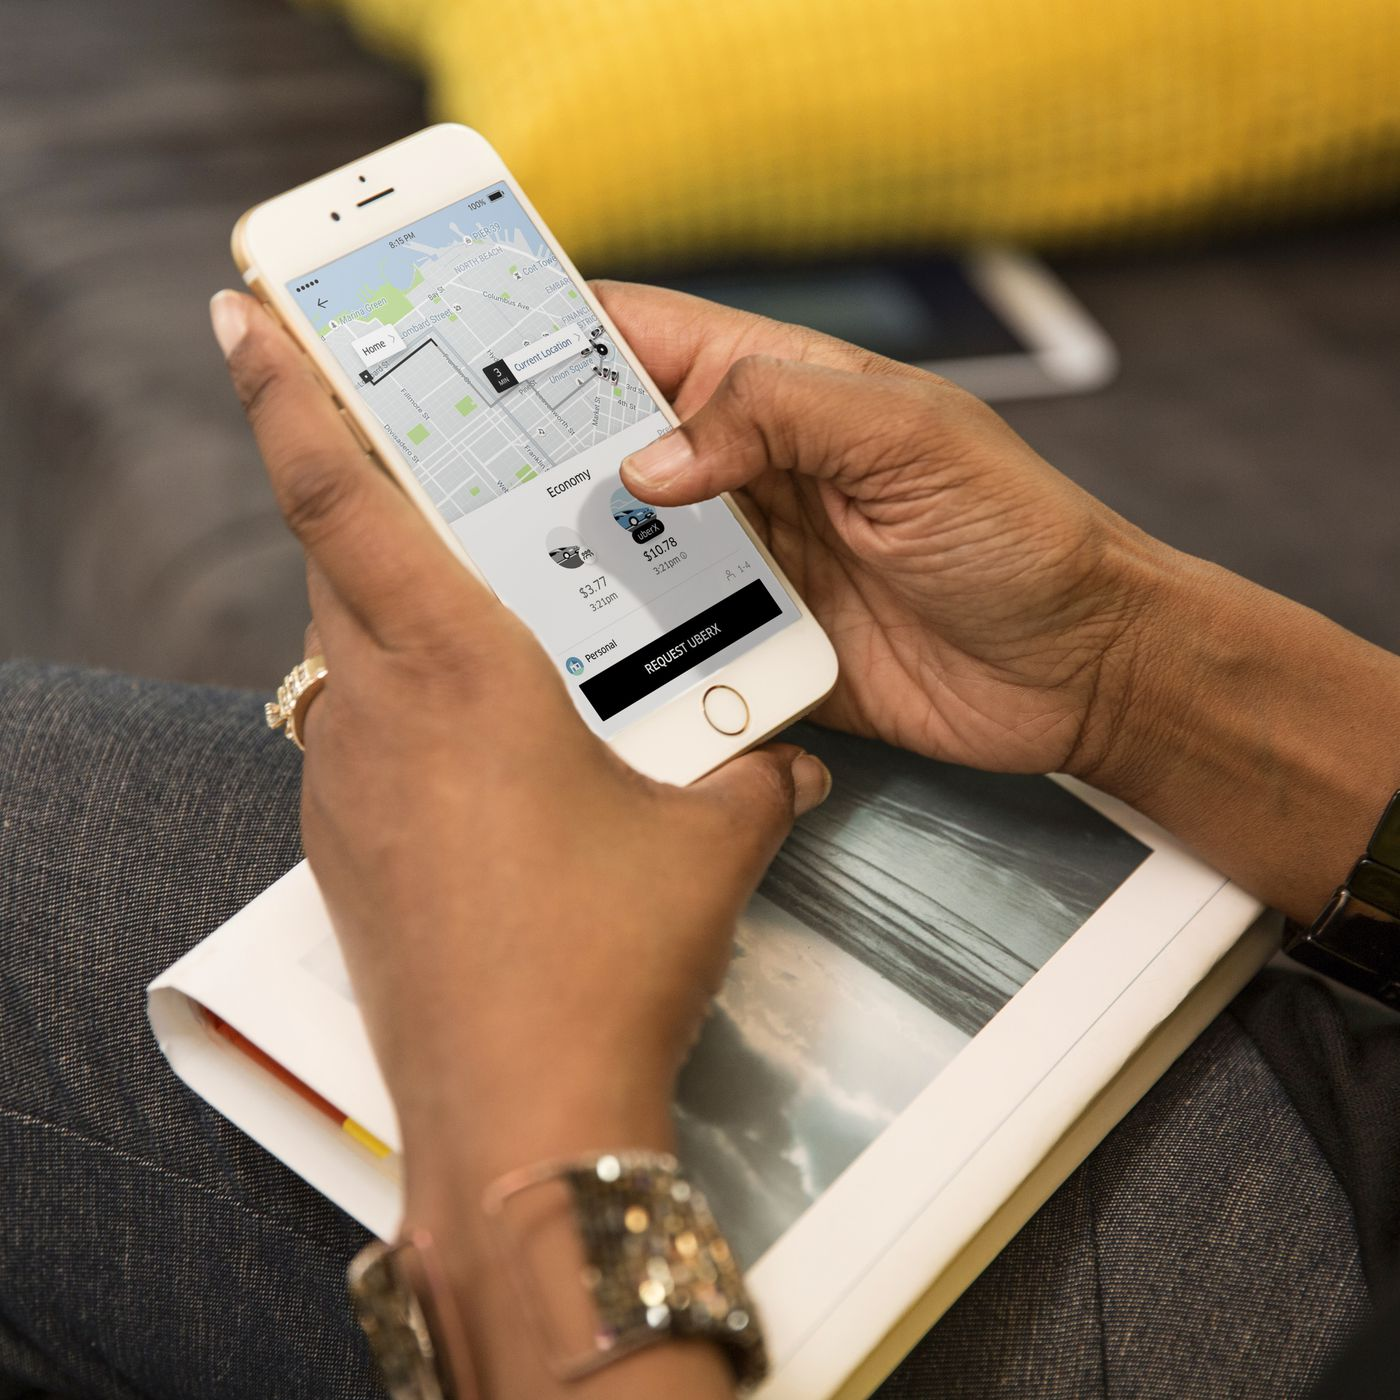 Uber wants to track your location even when you're not using the app